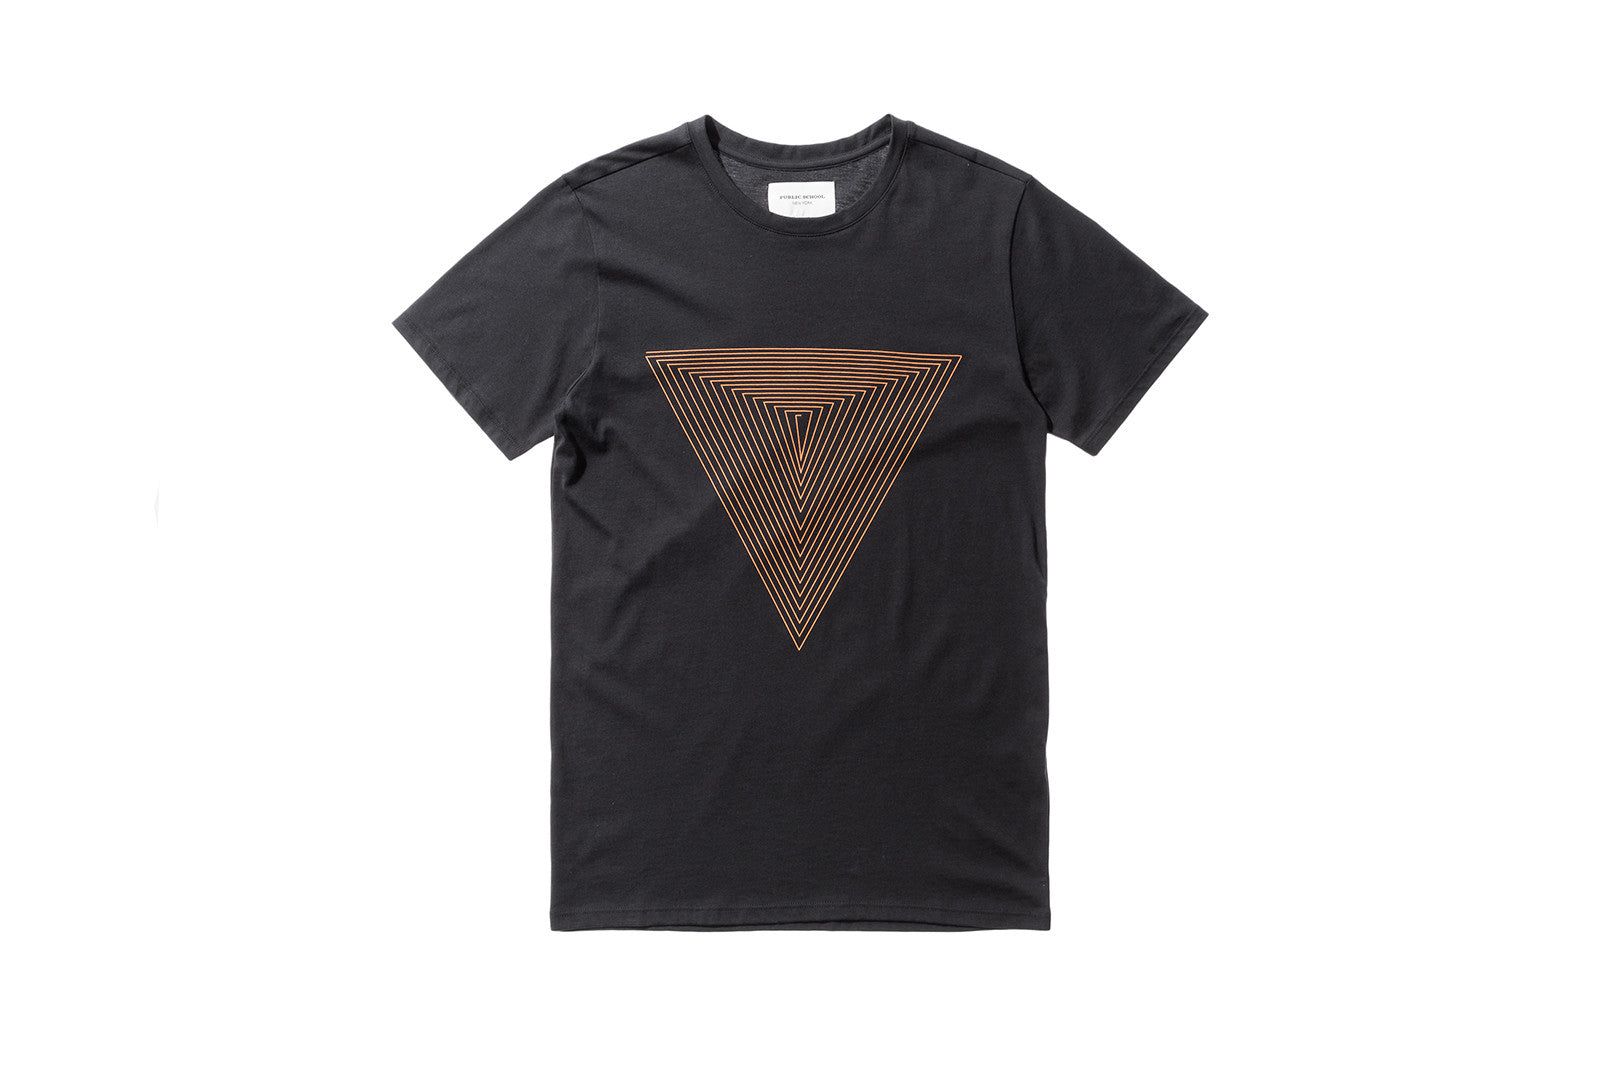 Public School Artin Triangle Tee - Black